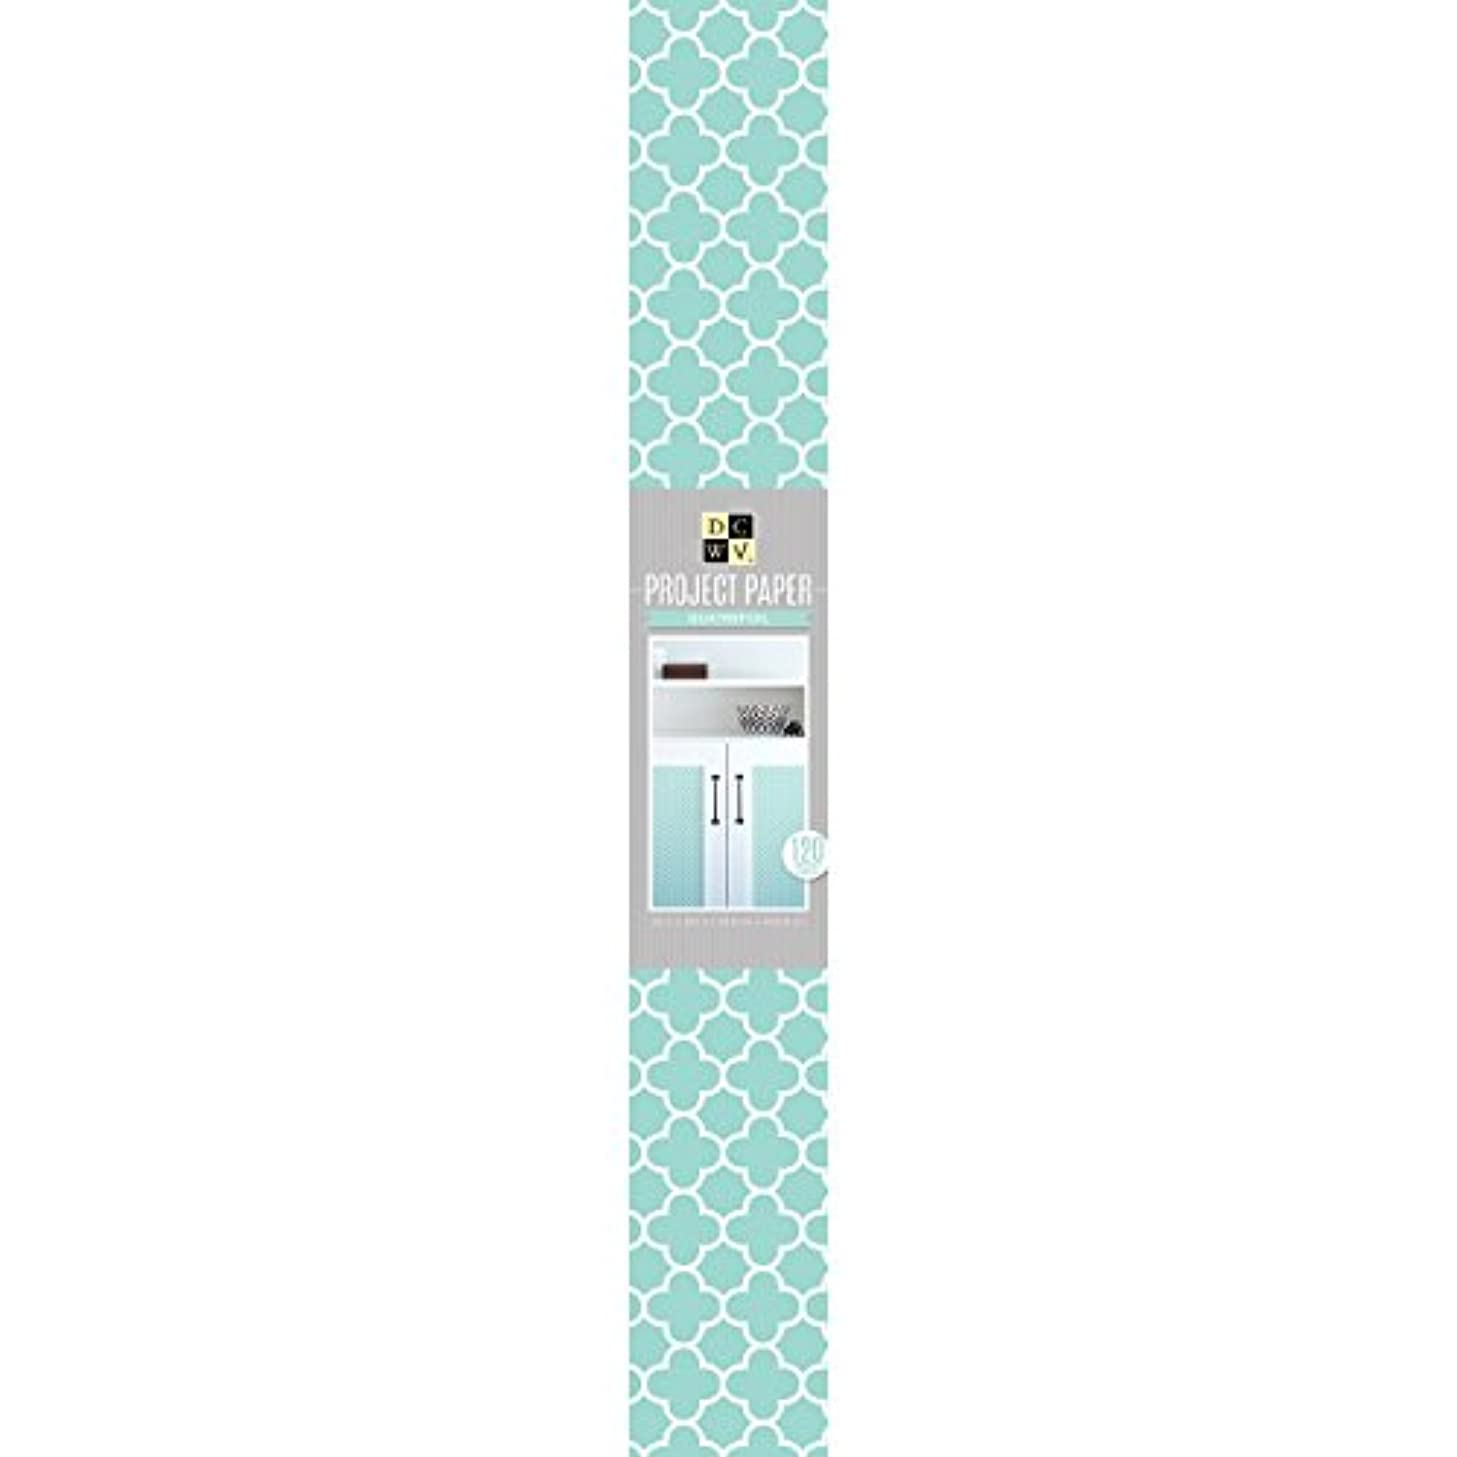 American Crafts 22 x 120 Teal Clove Geo Paper Roll by Die Cuts with A View,